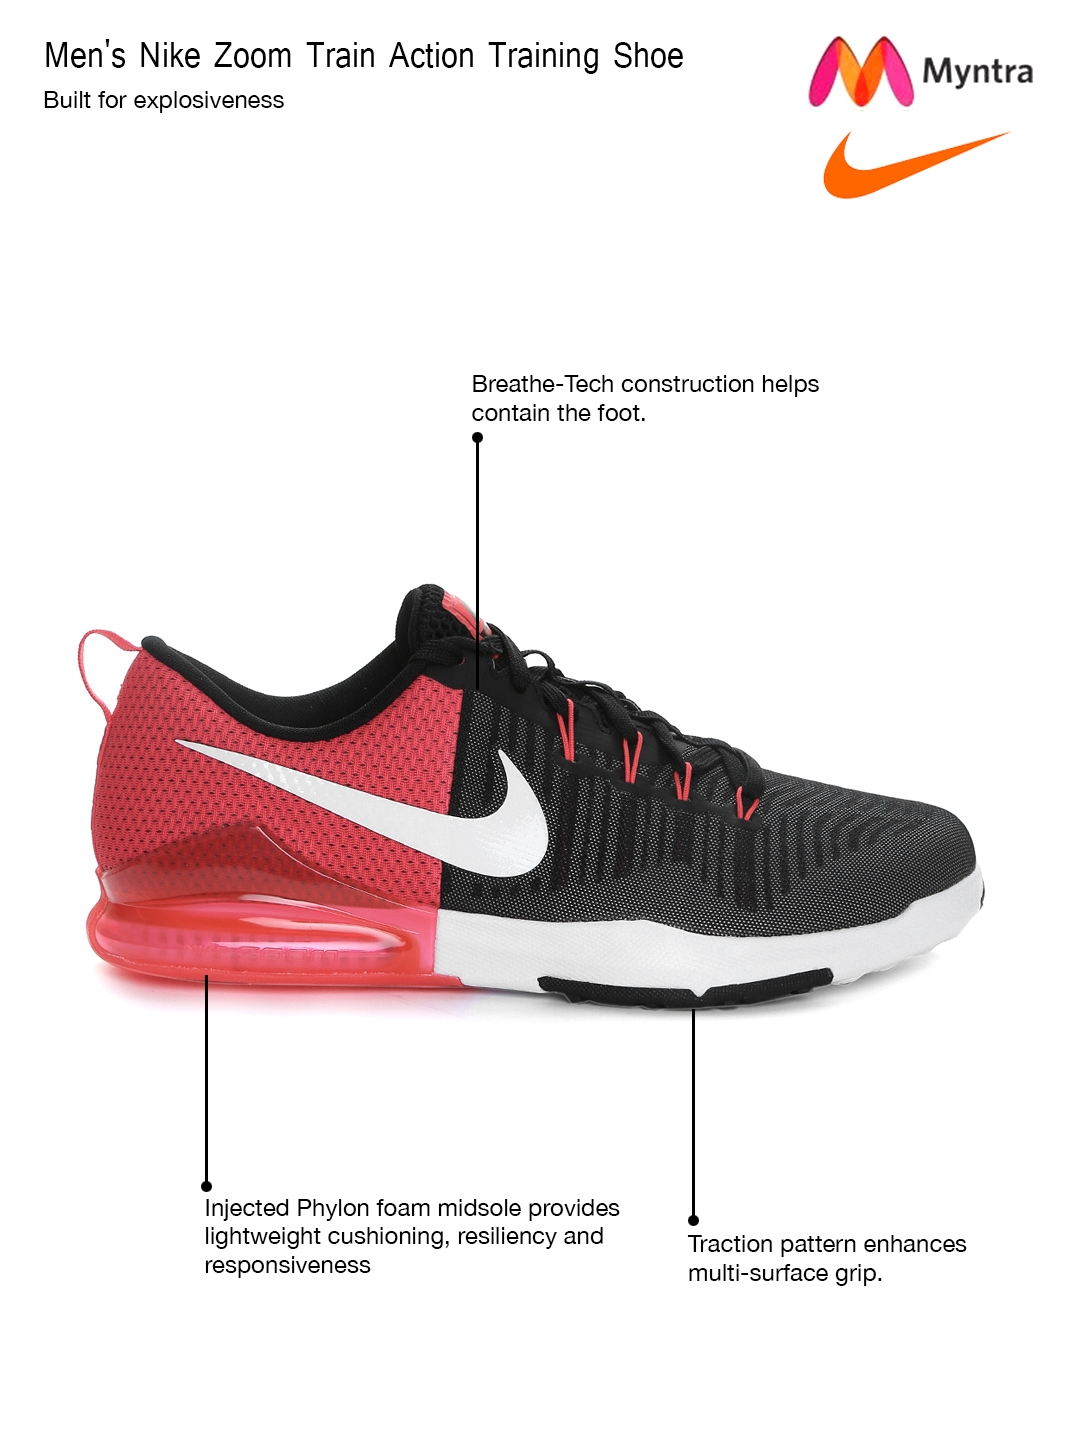 57da8a8131f9 Buy Nike Men Black   Red Zoom Train Action Training Shoes - Sports Shoes  for Men 1547981